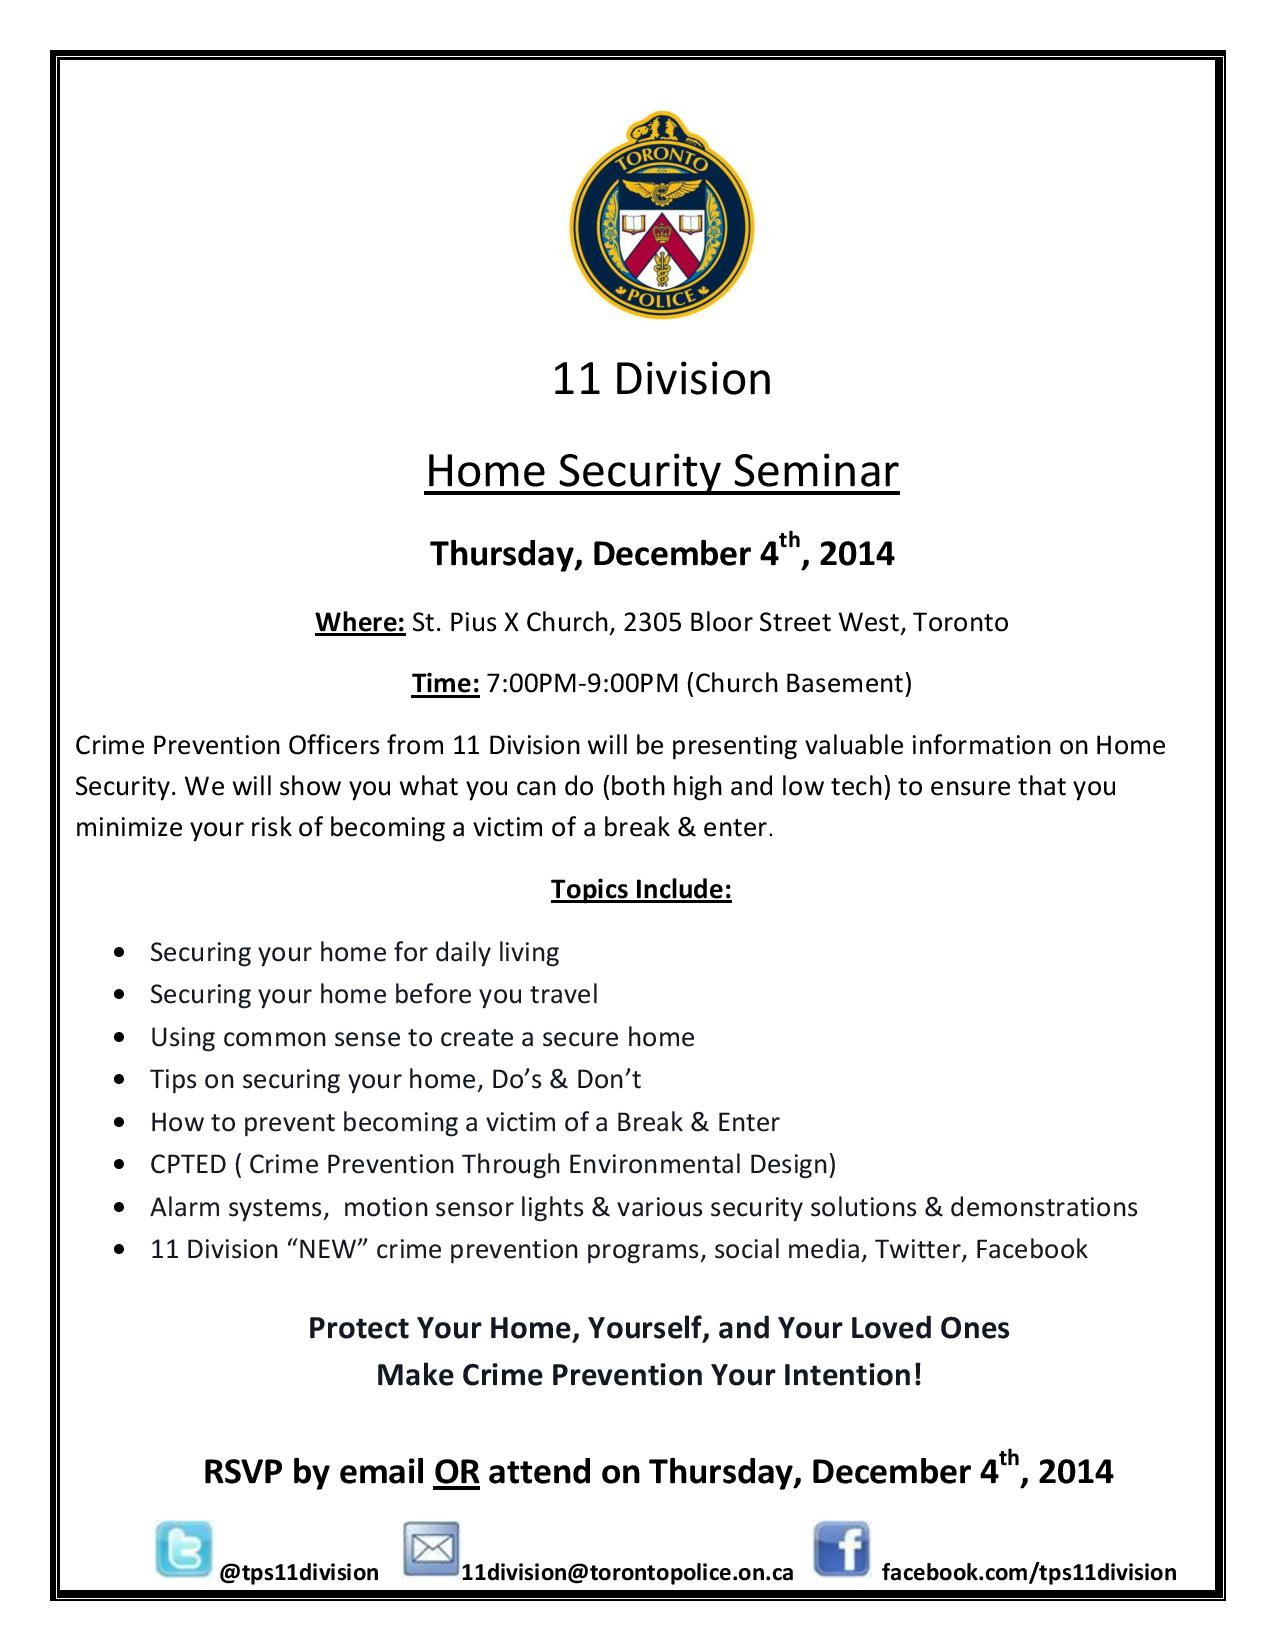 11 Division Home Security Seminar-page-001